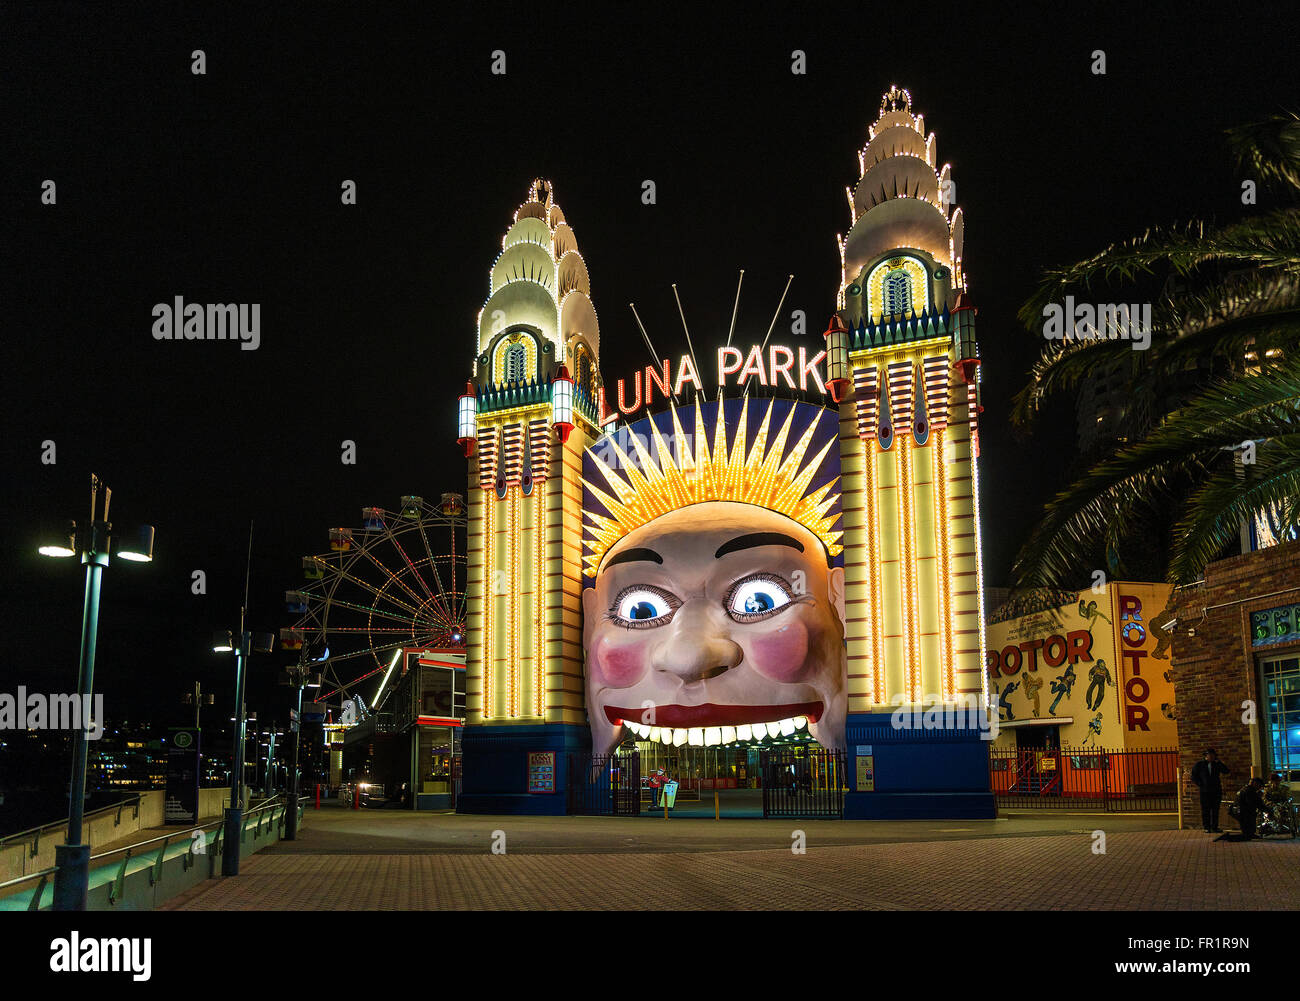 luna park amusement park entrance in sydney australia at night - Stock Image